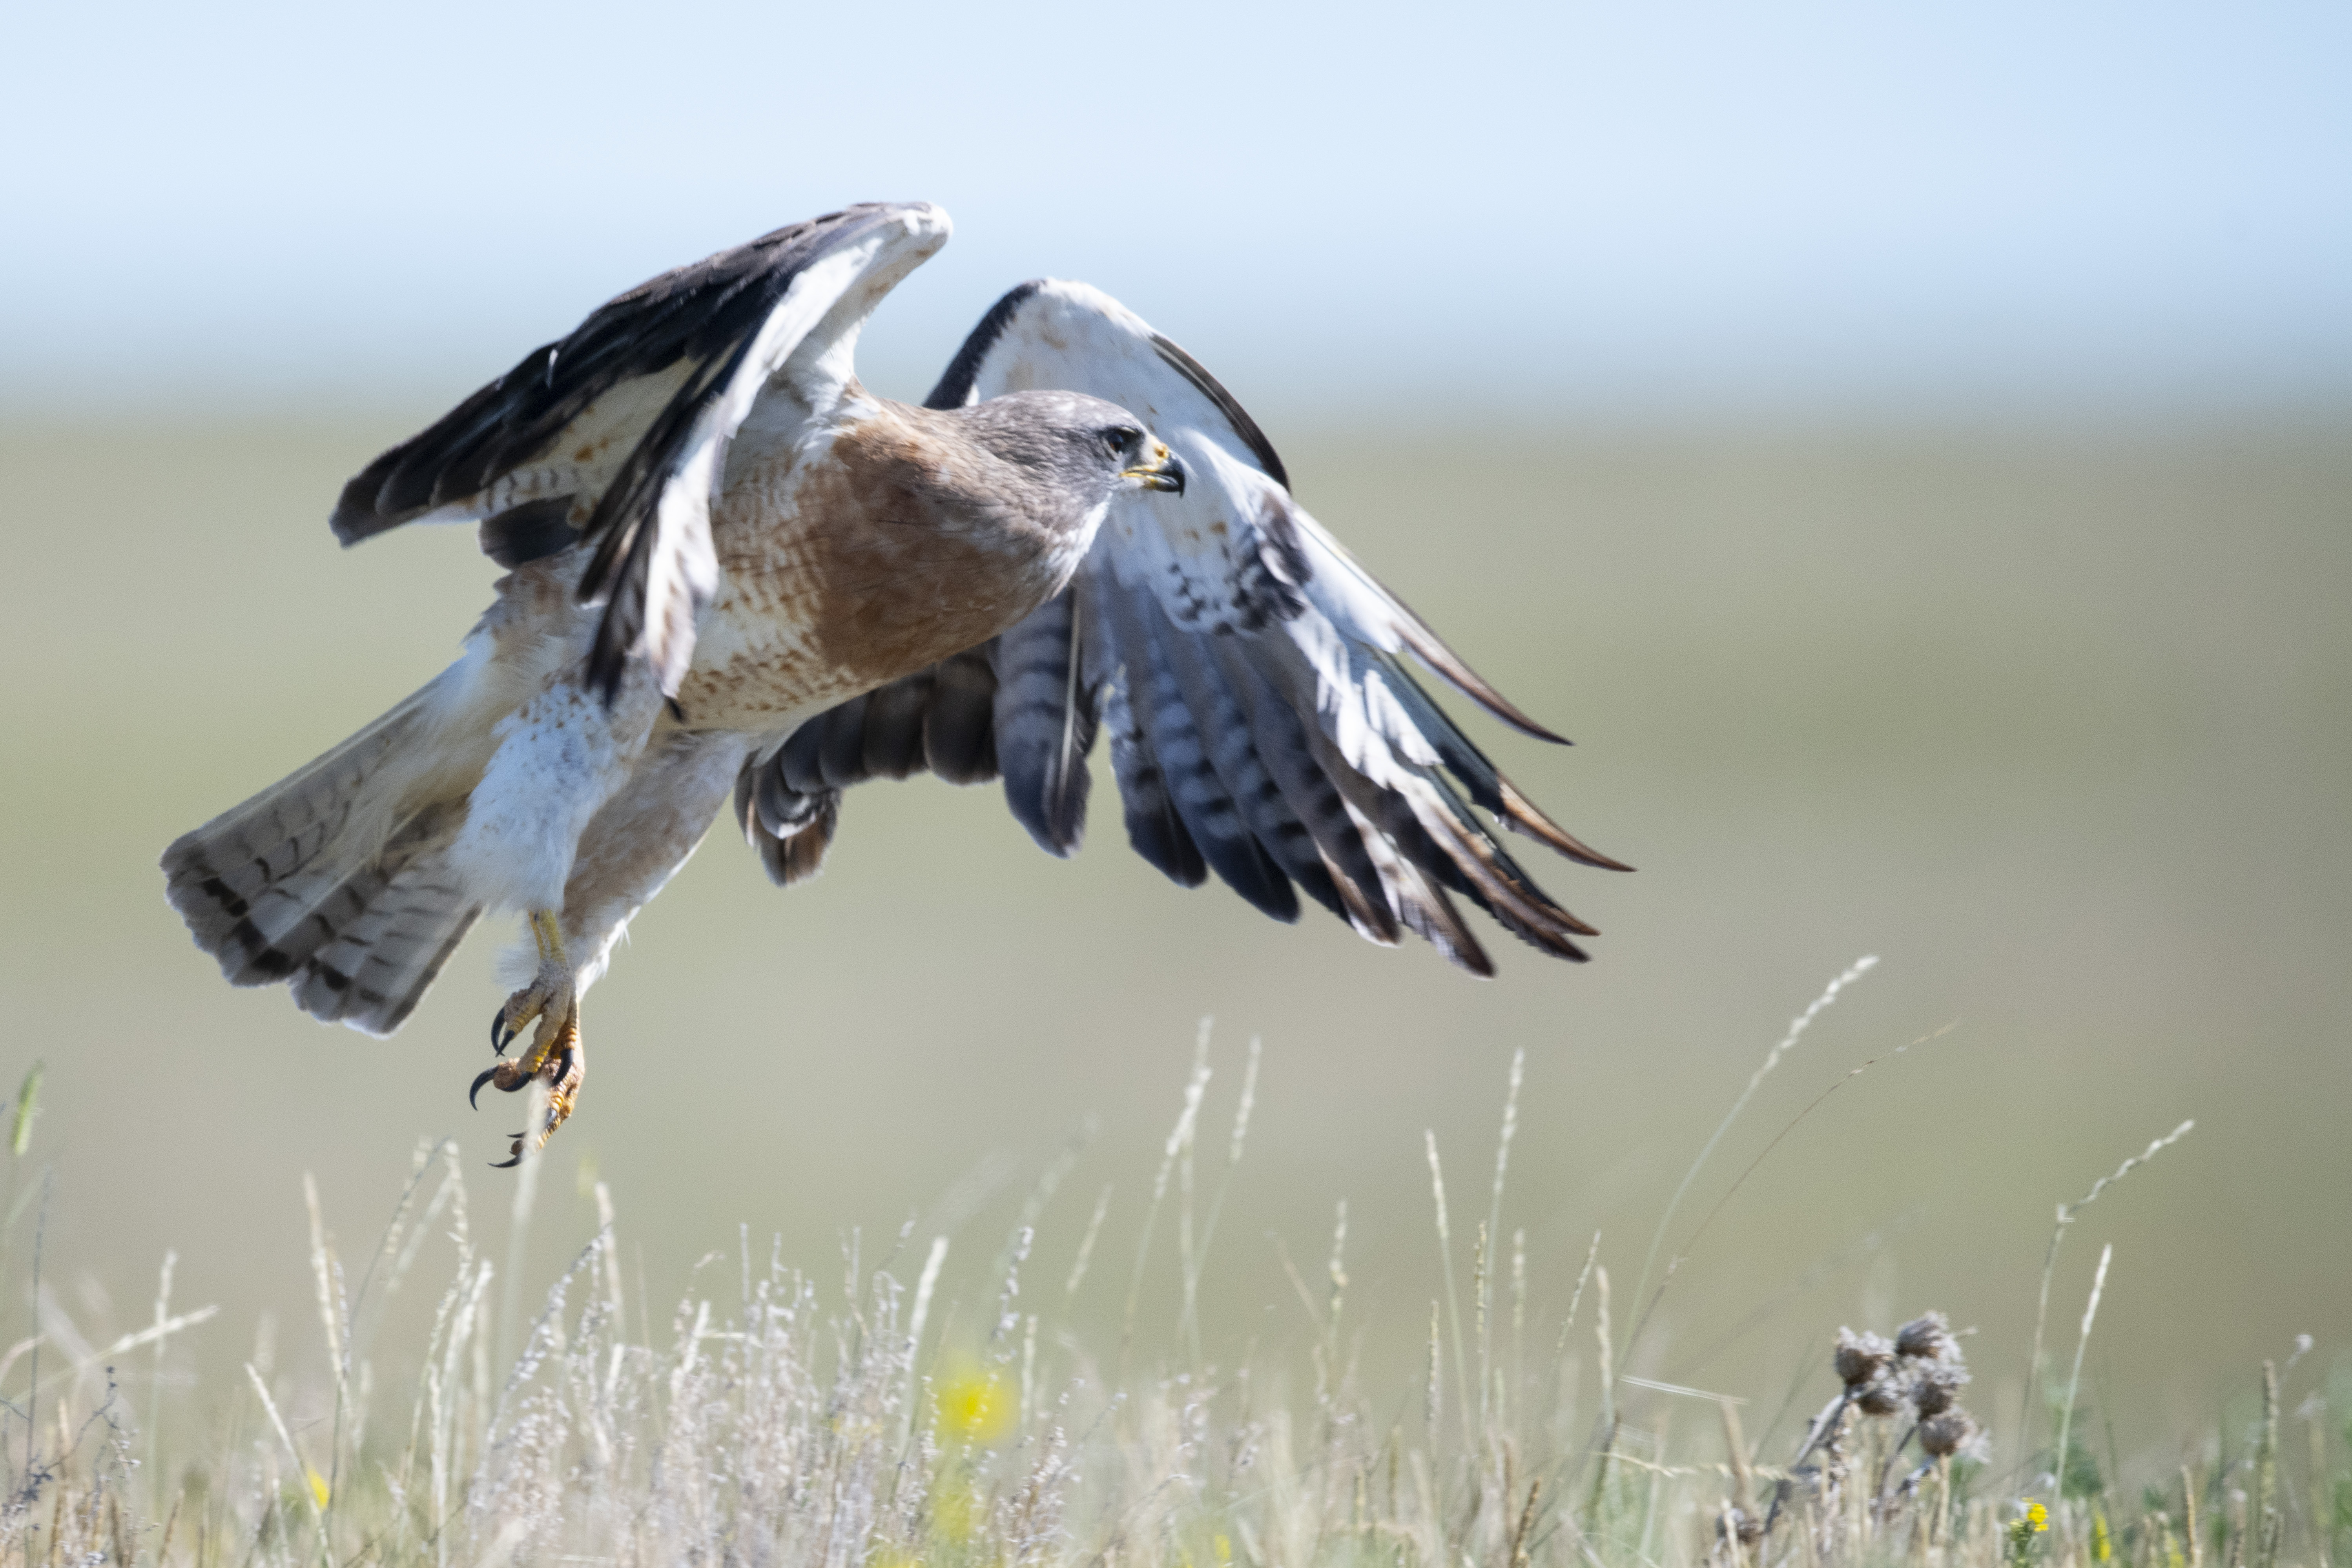 A hawk flies just above the ground